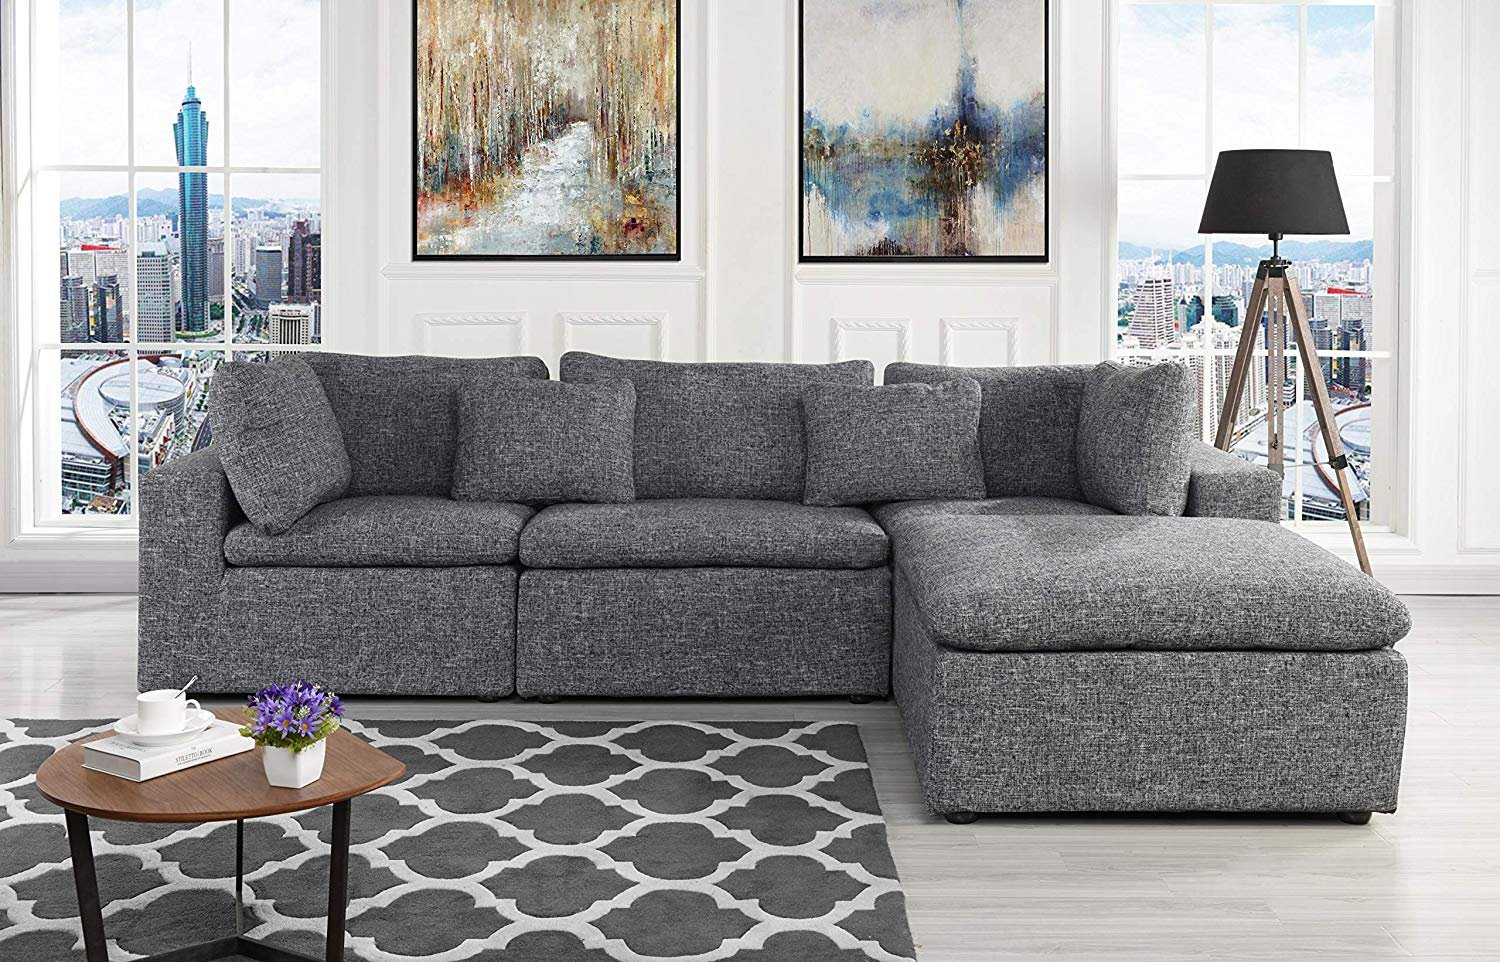 Large Linen Fabric Sectional Sofa, L Shape Couch With Wide Regarding 2Pc Crowningshield Contemporary Chaise Sofas Light Gray (View 1 of 15)